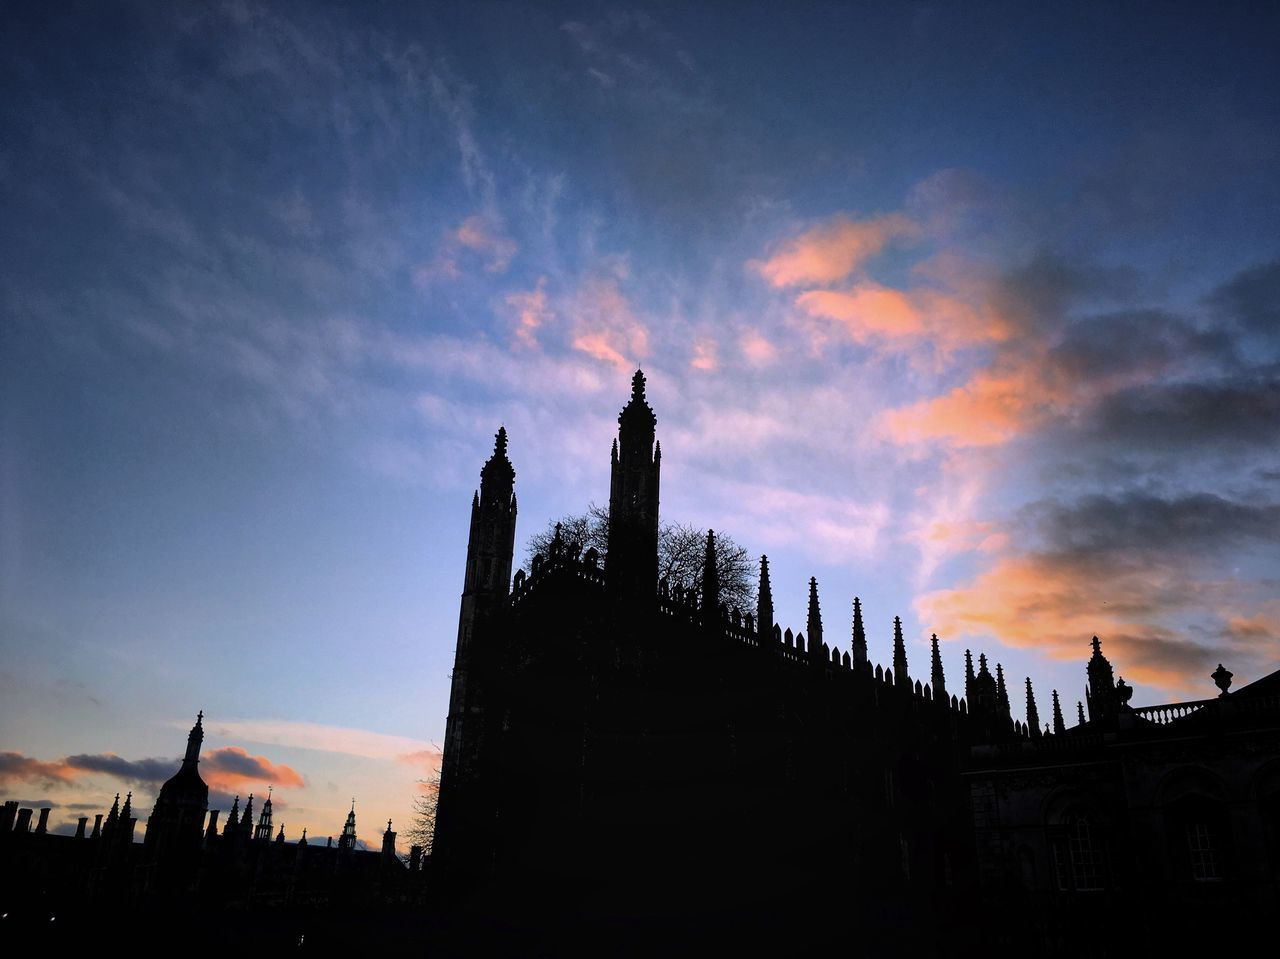 Architecture Sky Built Structure Building Exterior Cloud - Sky Travel Destinations Low Angle View Sunset Outdoors No People Day Kings College Kings College Chapel Kings College Cambridge Cambridge Cambridgeshire Cambridge University Twilight Twilight Sky University Of Cambridge Architecture_collection Mood